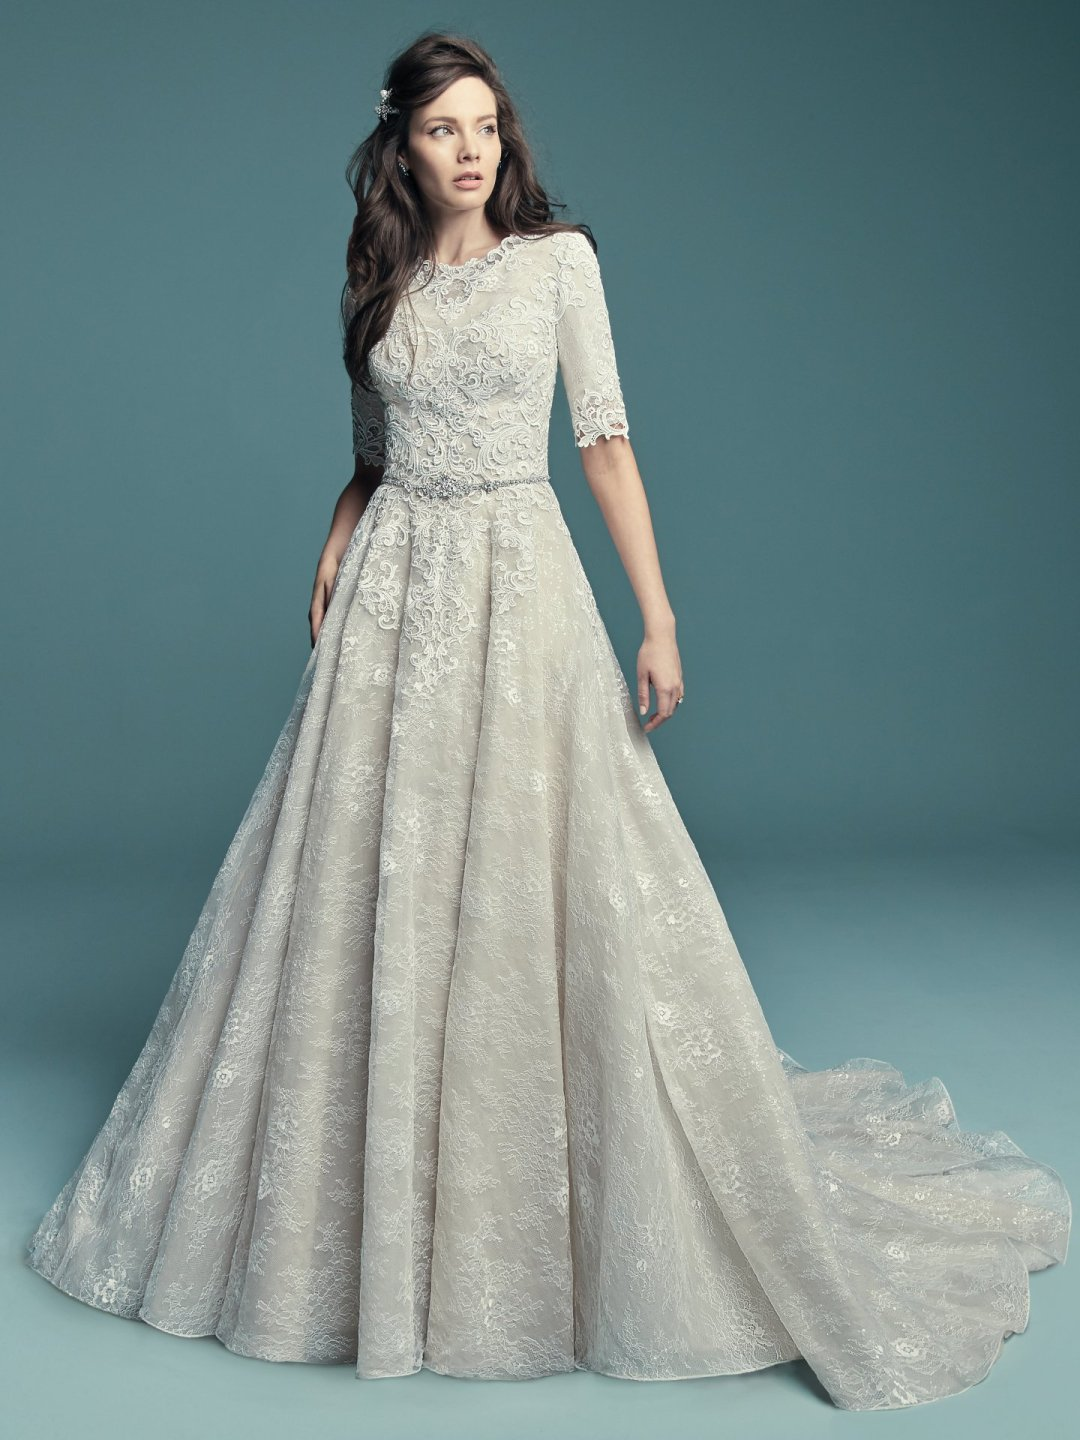 25 Modest Ball Gown Wedding Dresses - 16